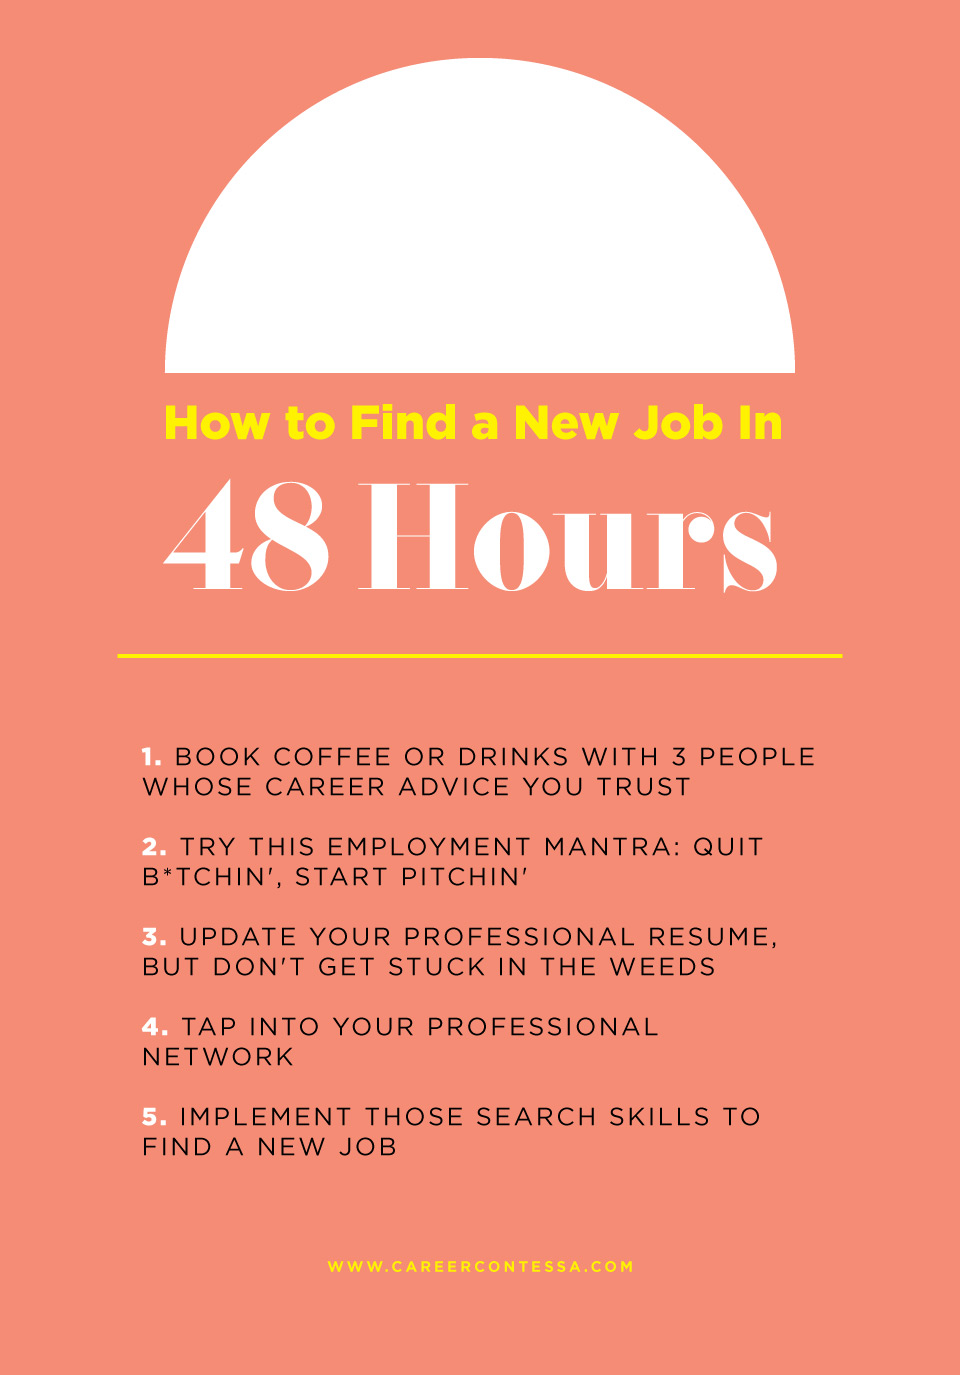 5 Hacks to Find a New Job In 48 Hours | Career Contessa